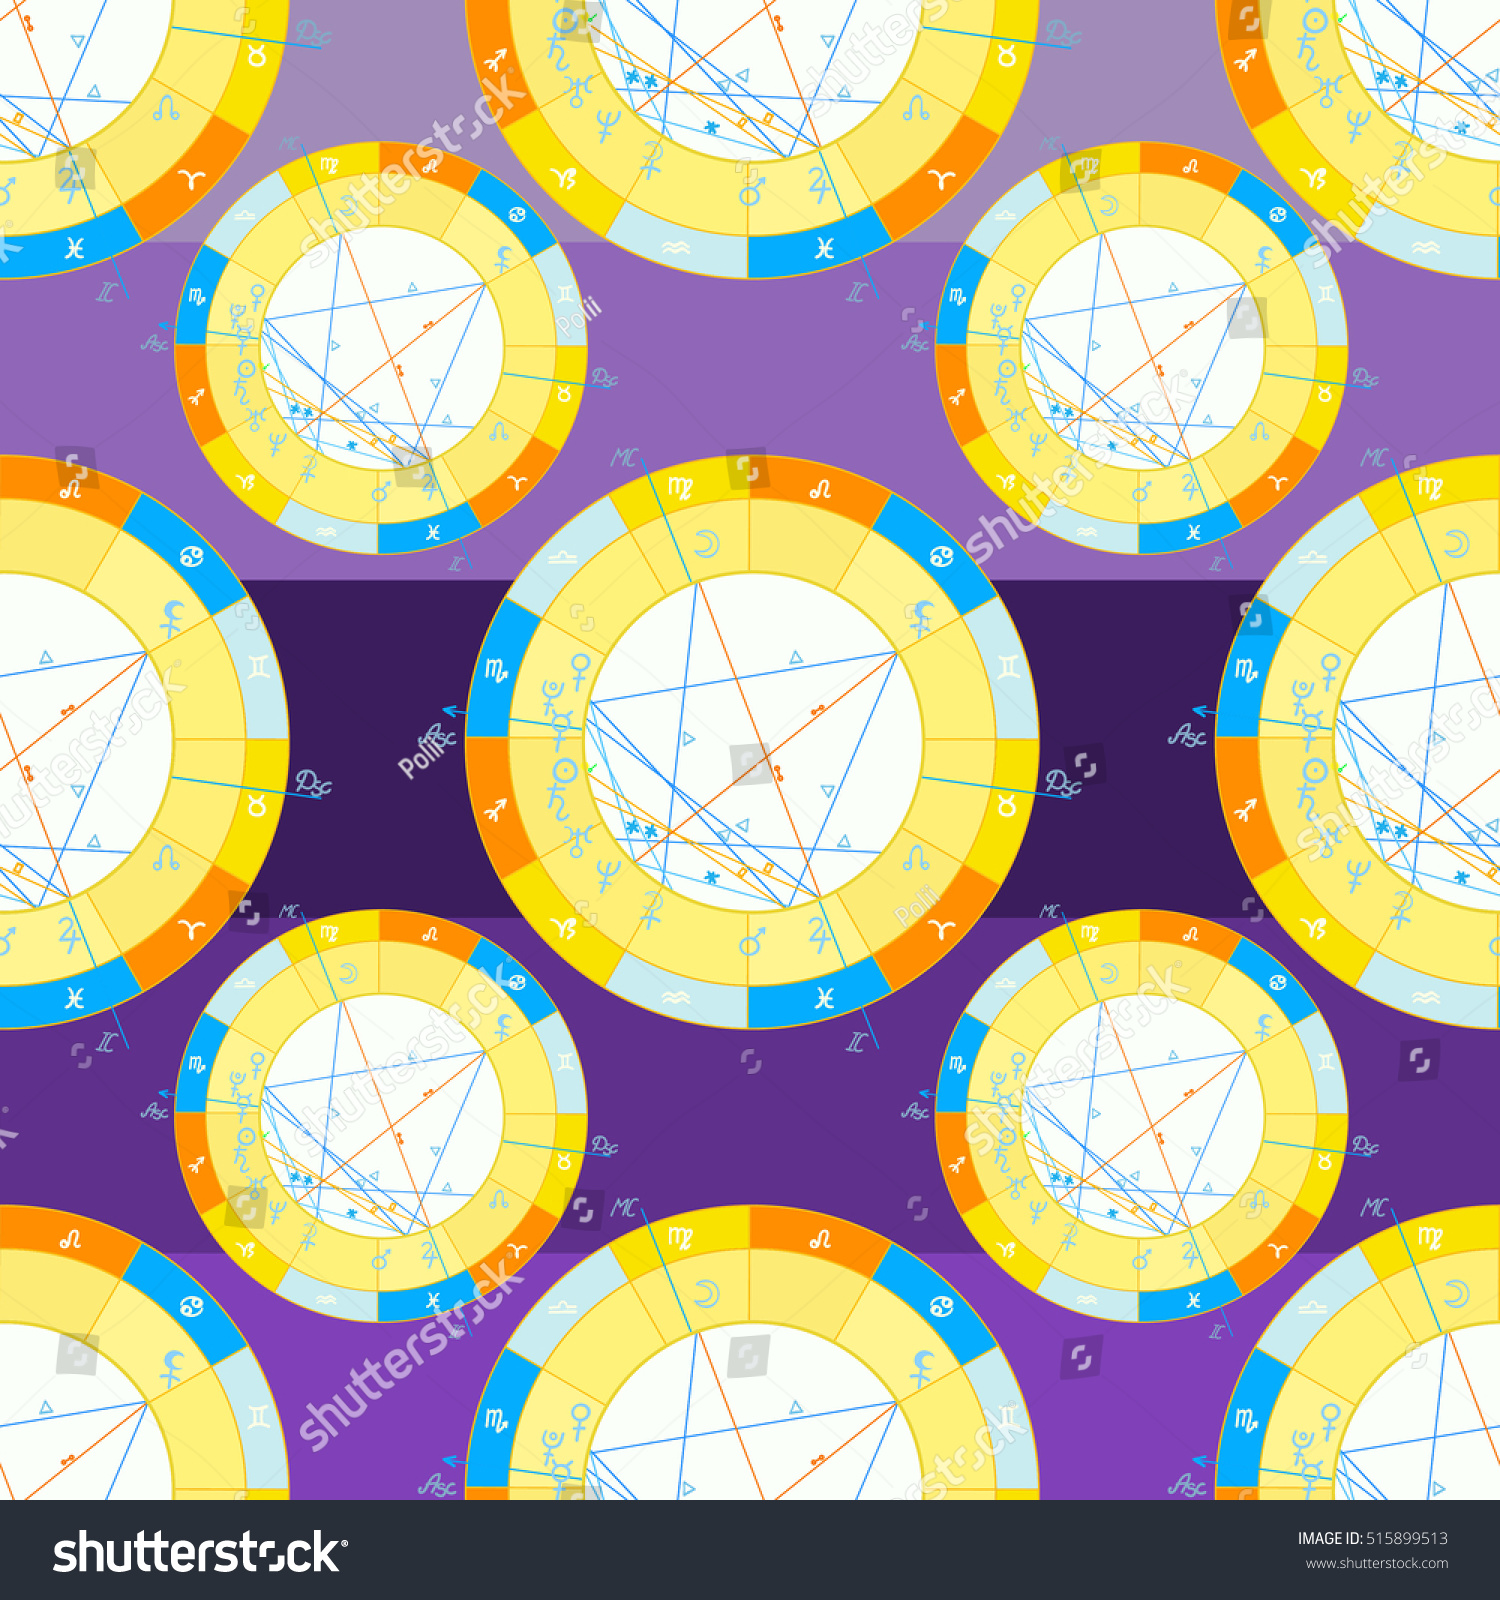 0800 astrology birth chart images free any chart examples 0800 astrology birth chart image collections free any chart examples birth chart zodiac signs gallery free nvjuhfo Choice Image